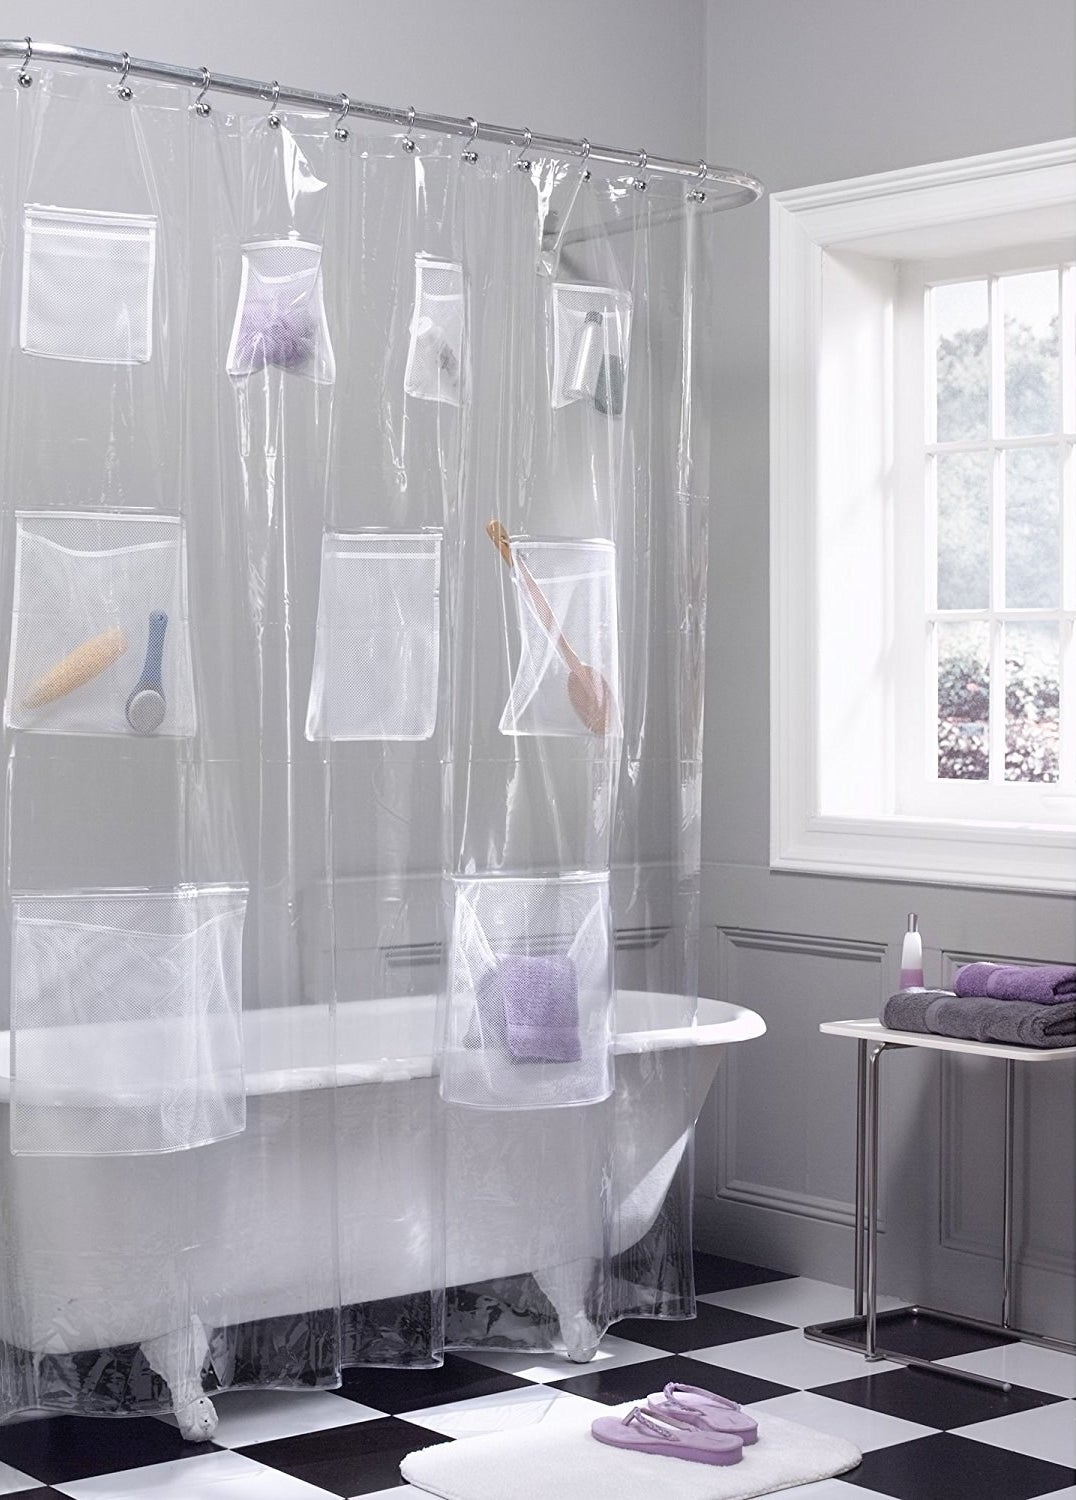 A clear shower curtain around a clawfoot bathtub with pockets holding shampoo bottles, washcloths, and other bathtime accessories